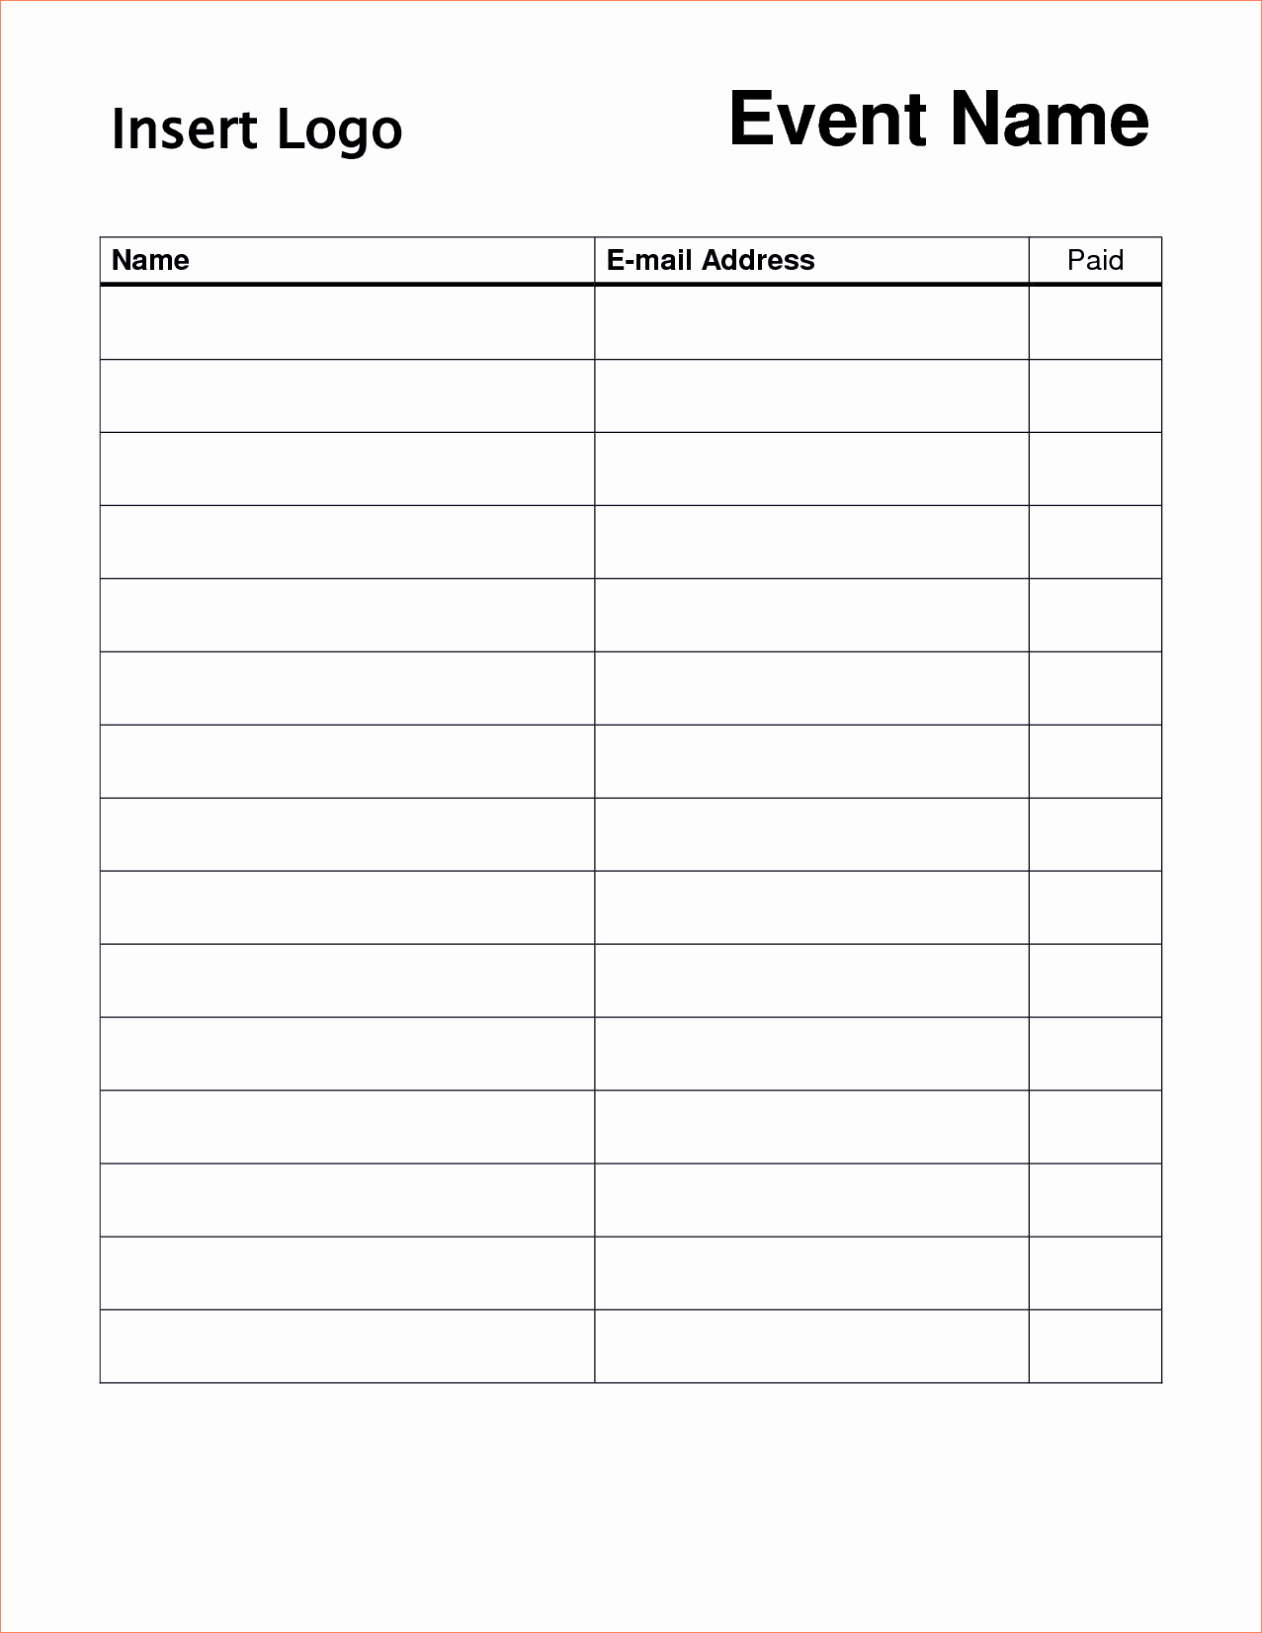 Sample Volunteer Sign Up Sheet Awesome Printable Sign Up Sheet Template Word Excel